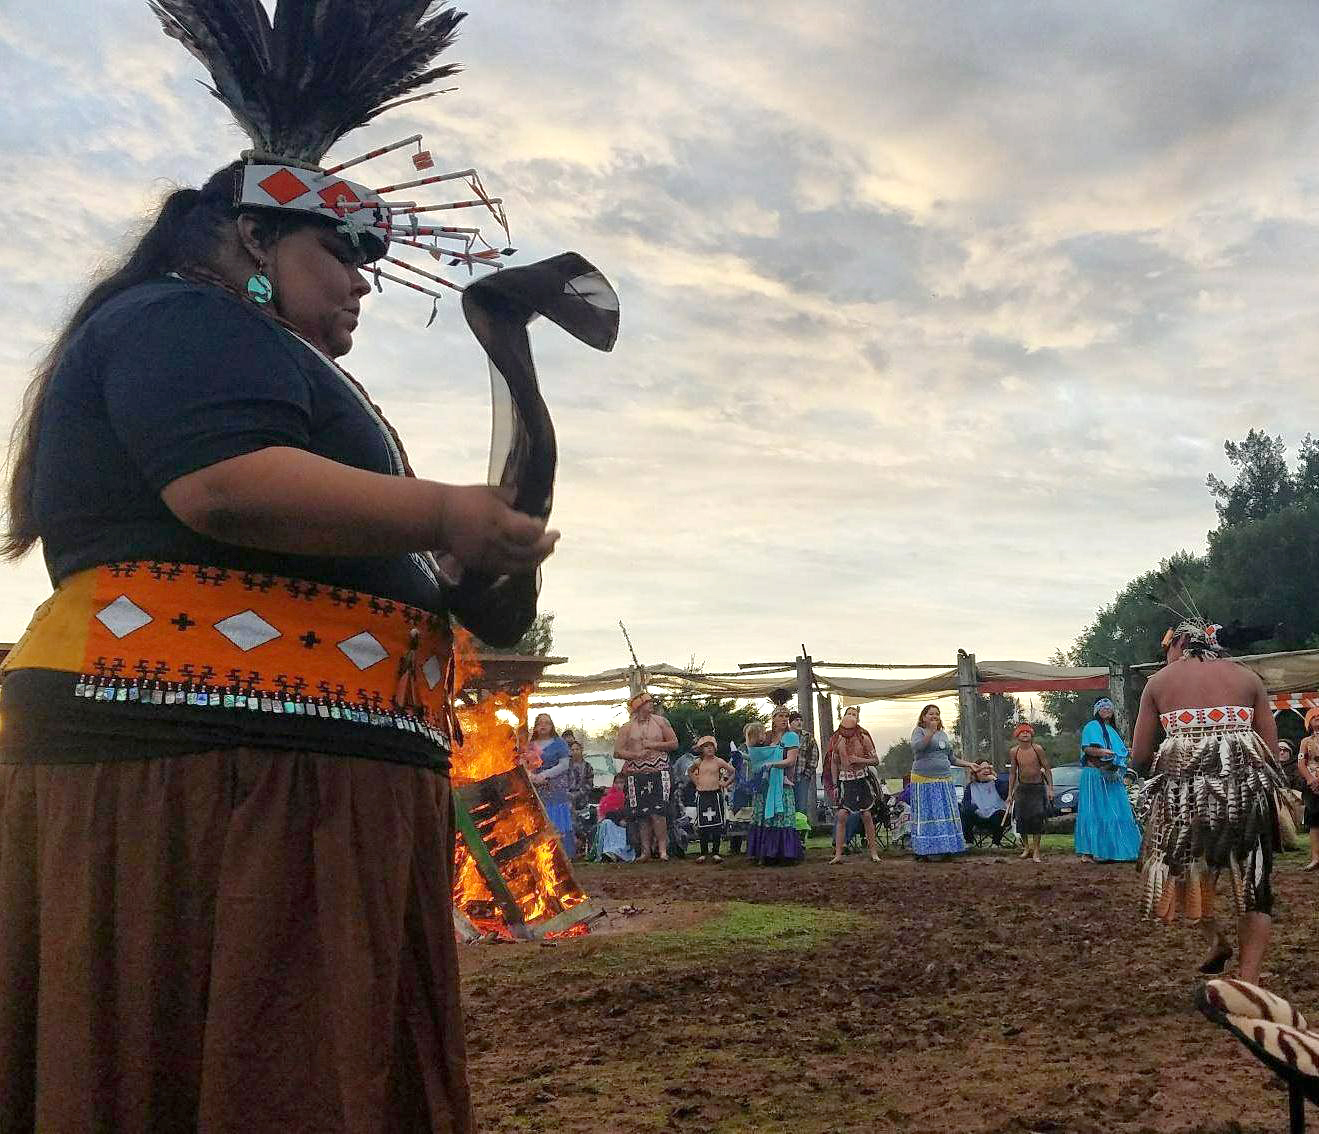 Rose Hammock dances during the 2017 Sunrise Ceremony at the Ya-ka-ama in Forestville, California. Photo provided by Hammock.